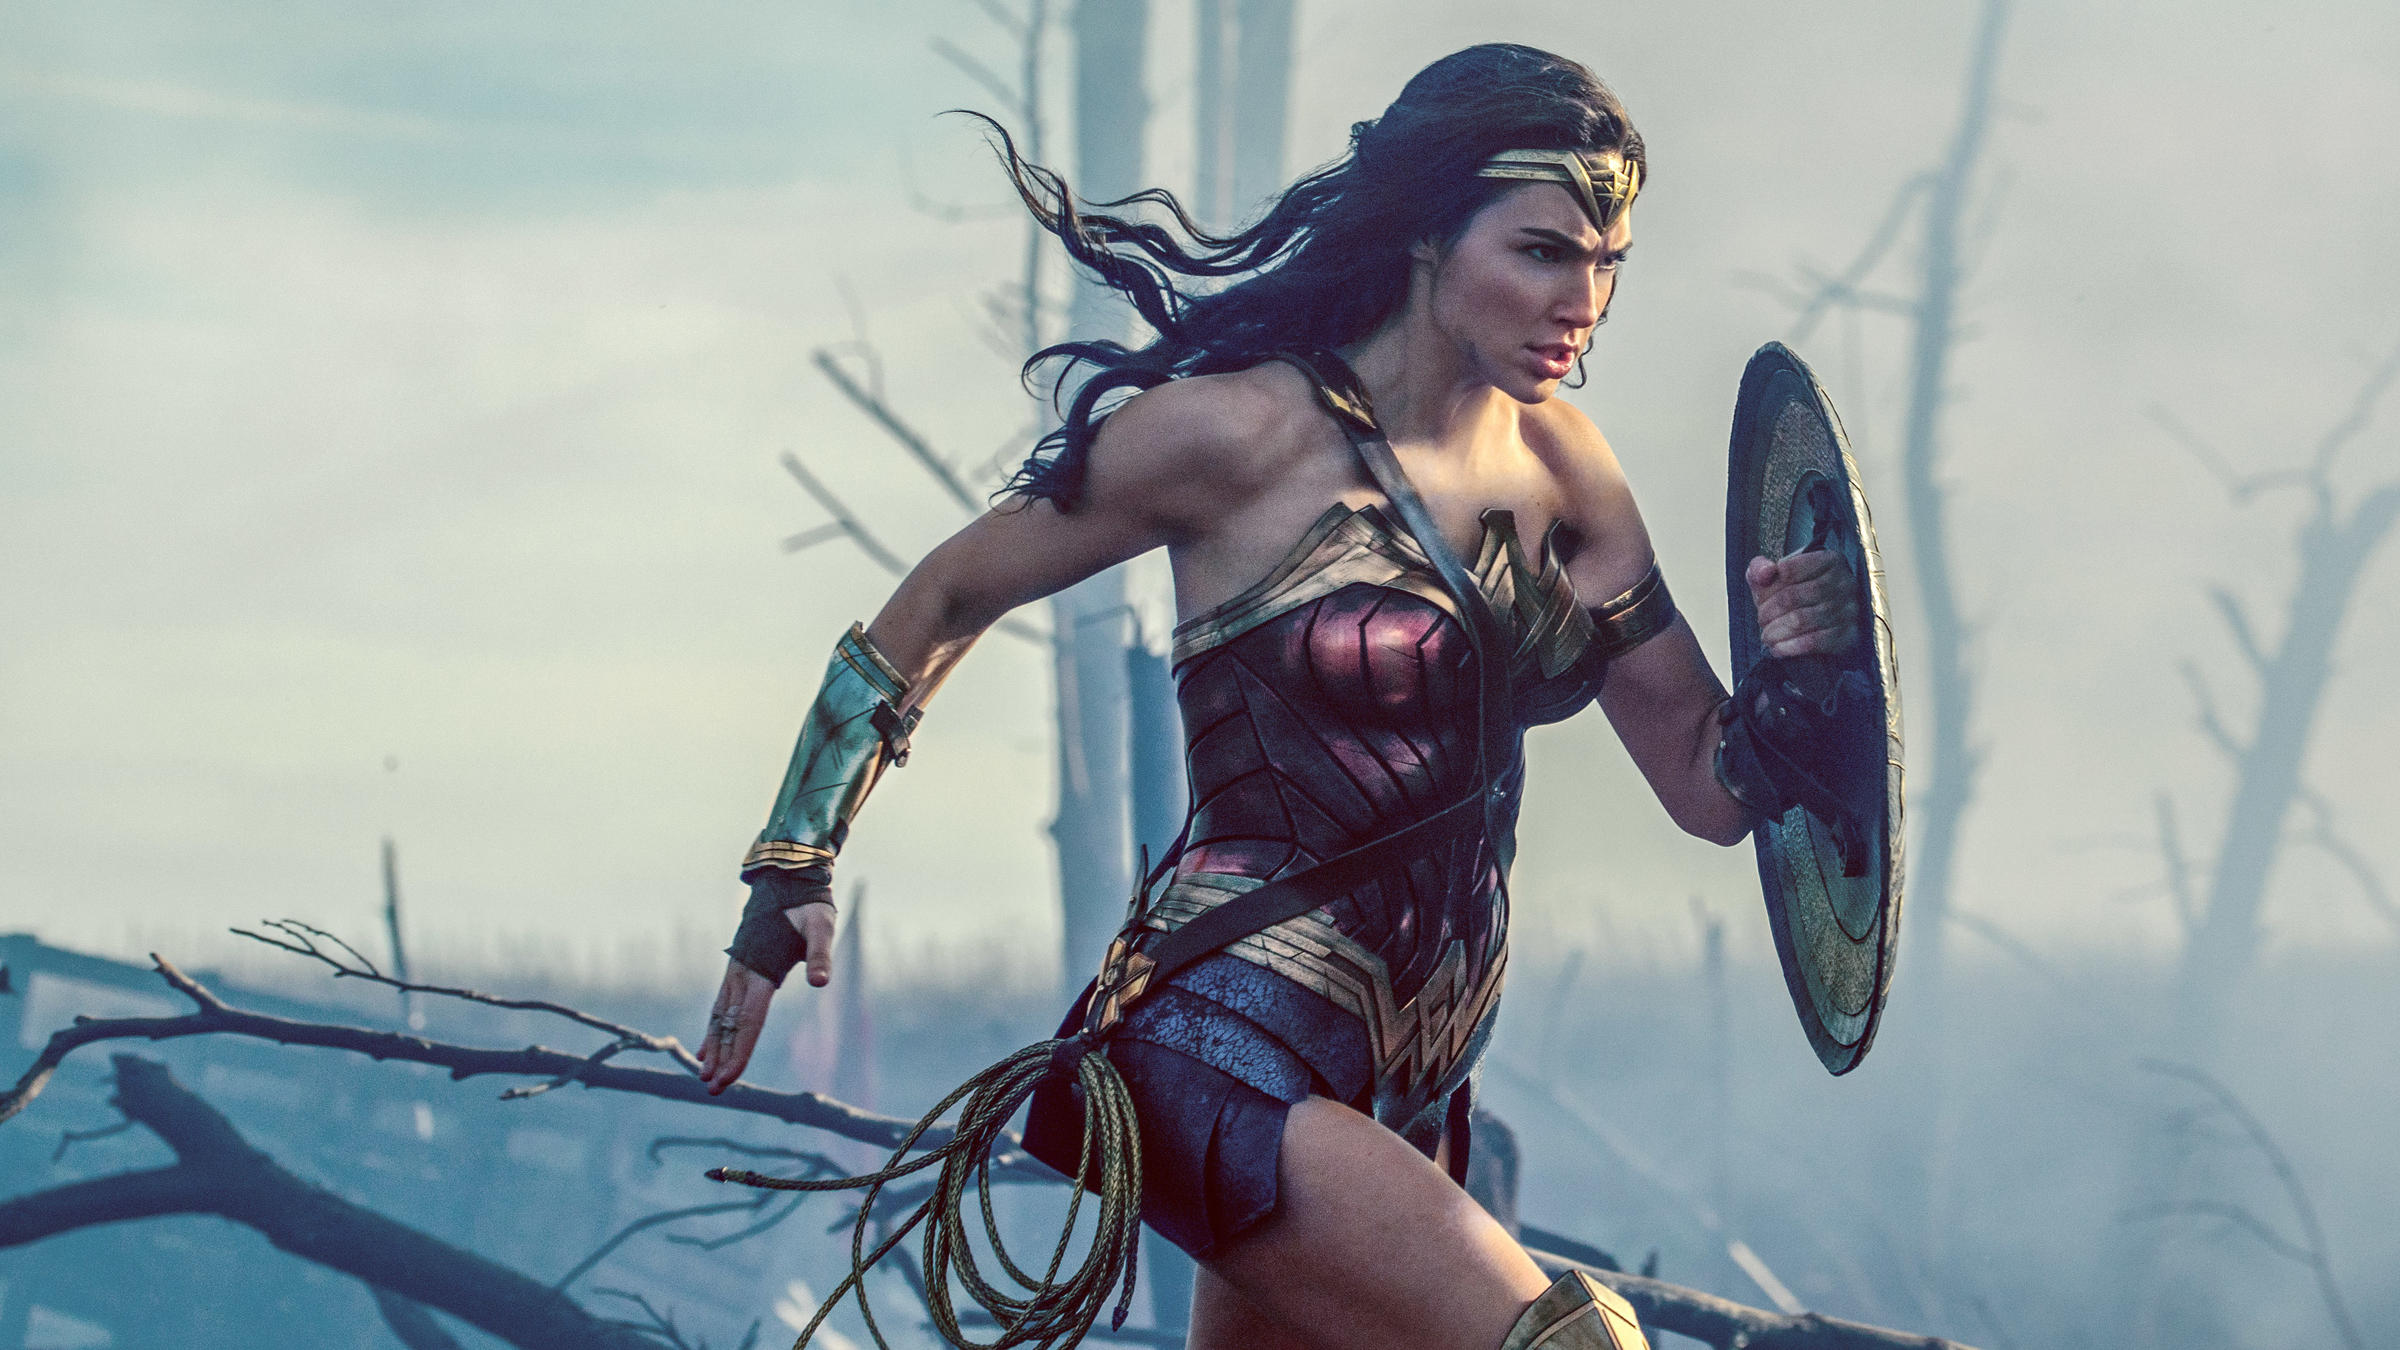 Cosplayer Meagan Marie Has a Different, Embattled Take on Wonder Woman